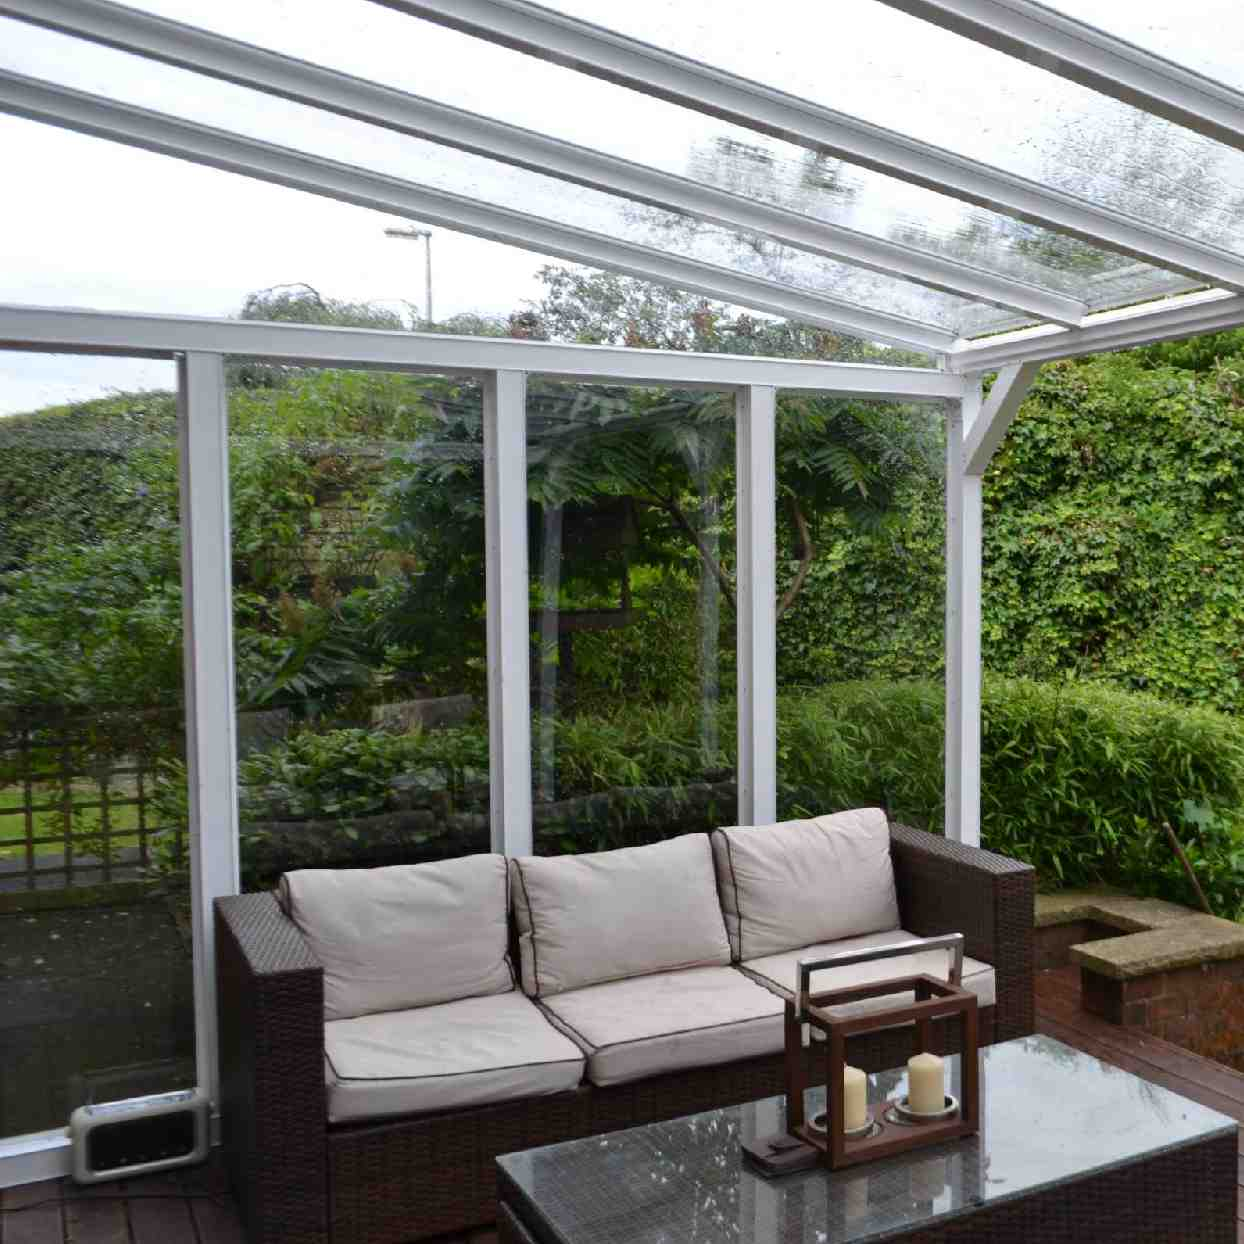 Buy Omega Verandah with 16mm Polycarbonate Glazing - 11.4m (W) x 4.0m (P), (5) Supporting Posts online today